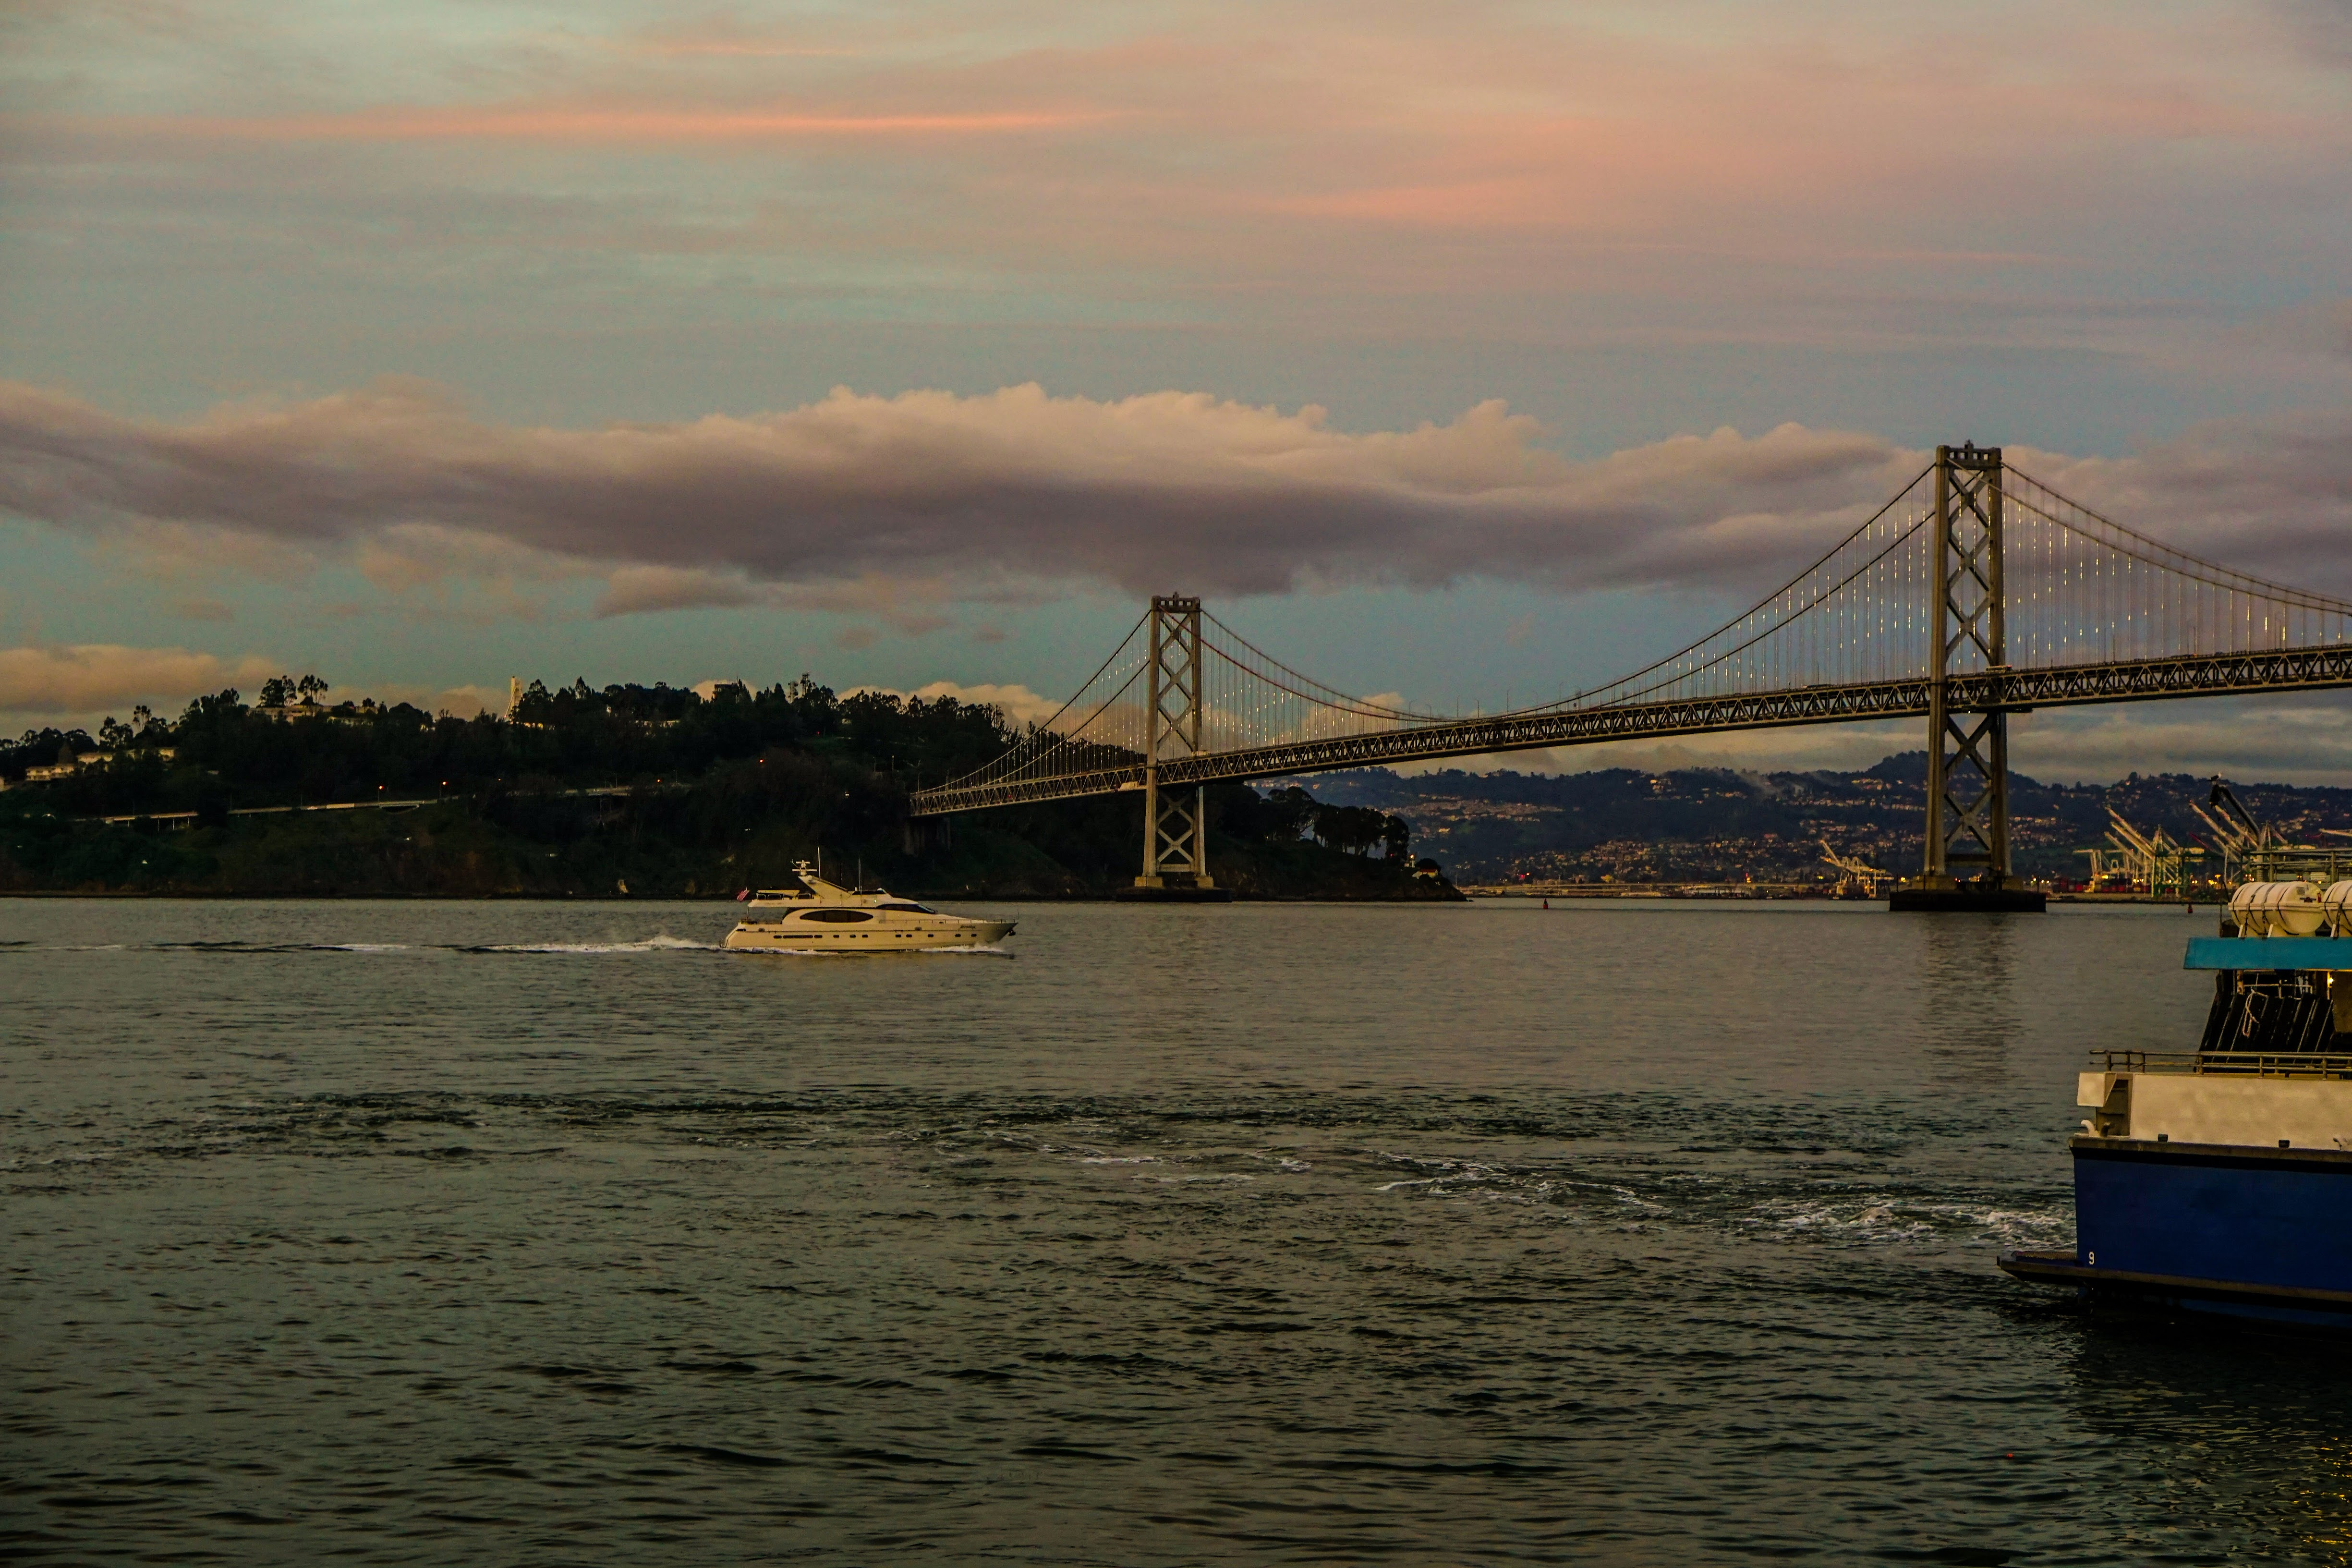 Bay Bridge at Dusk, Baybridge, Boat, Bridge, Sanfrancisco, HQ Photo